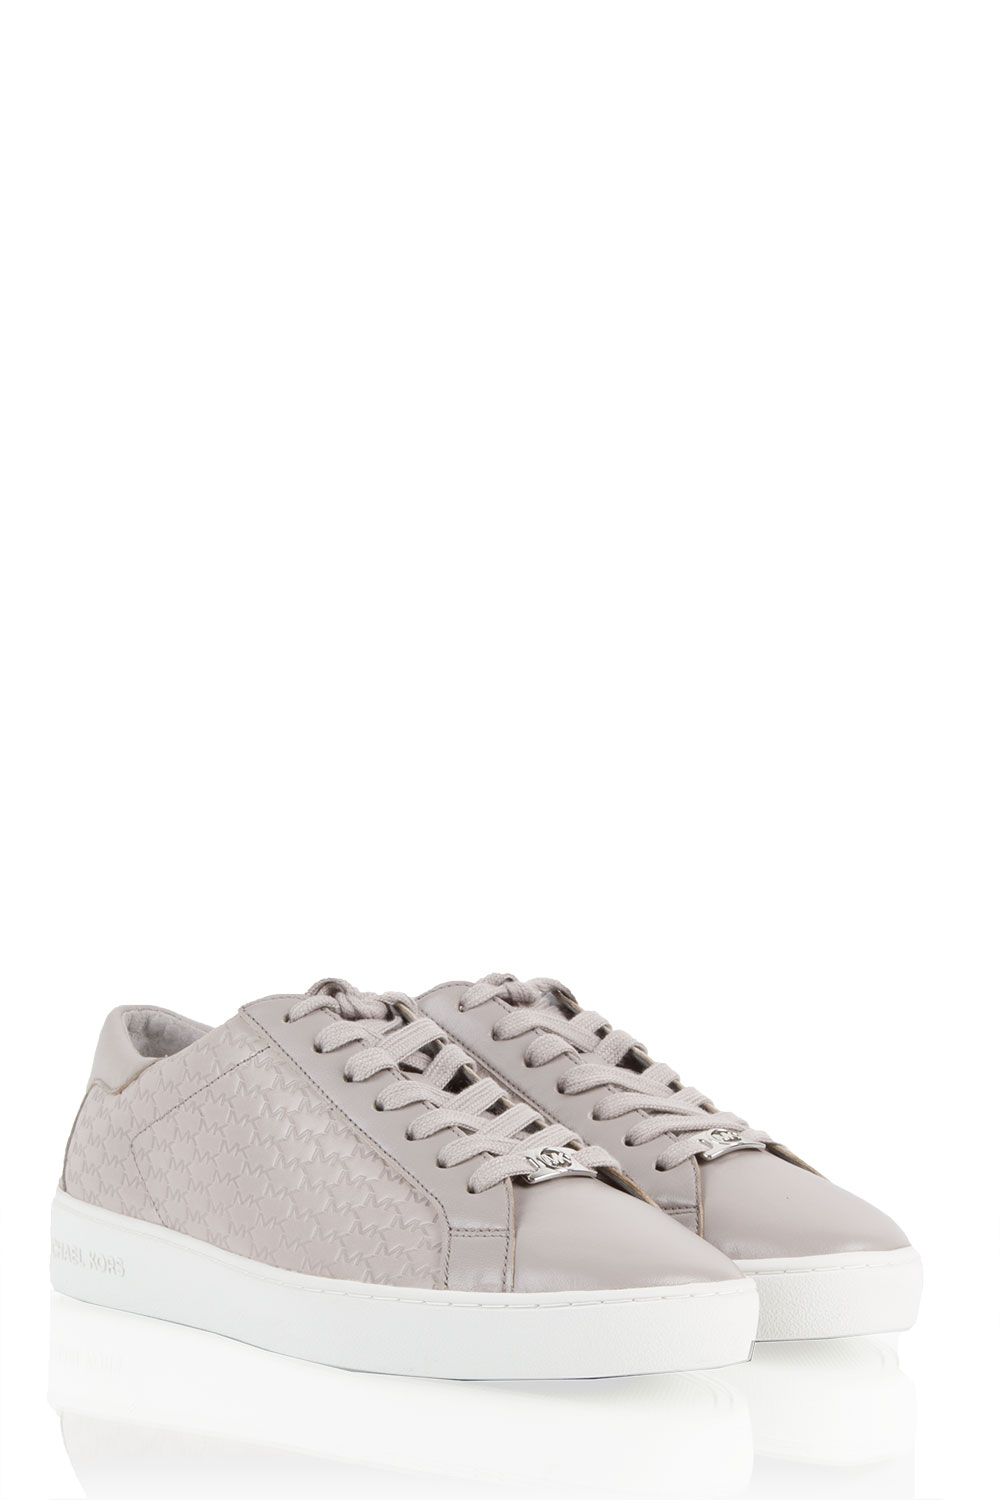 8880c1d5236 ... MICHAEL Michael Kors | Leather sneaker Colby | grey | Picture ...